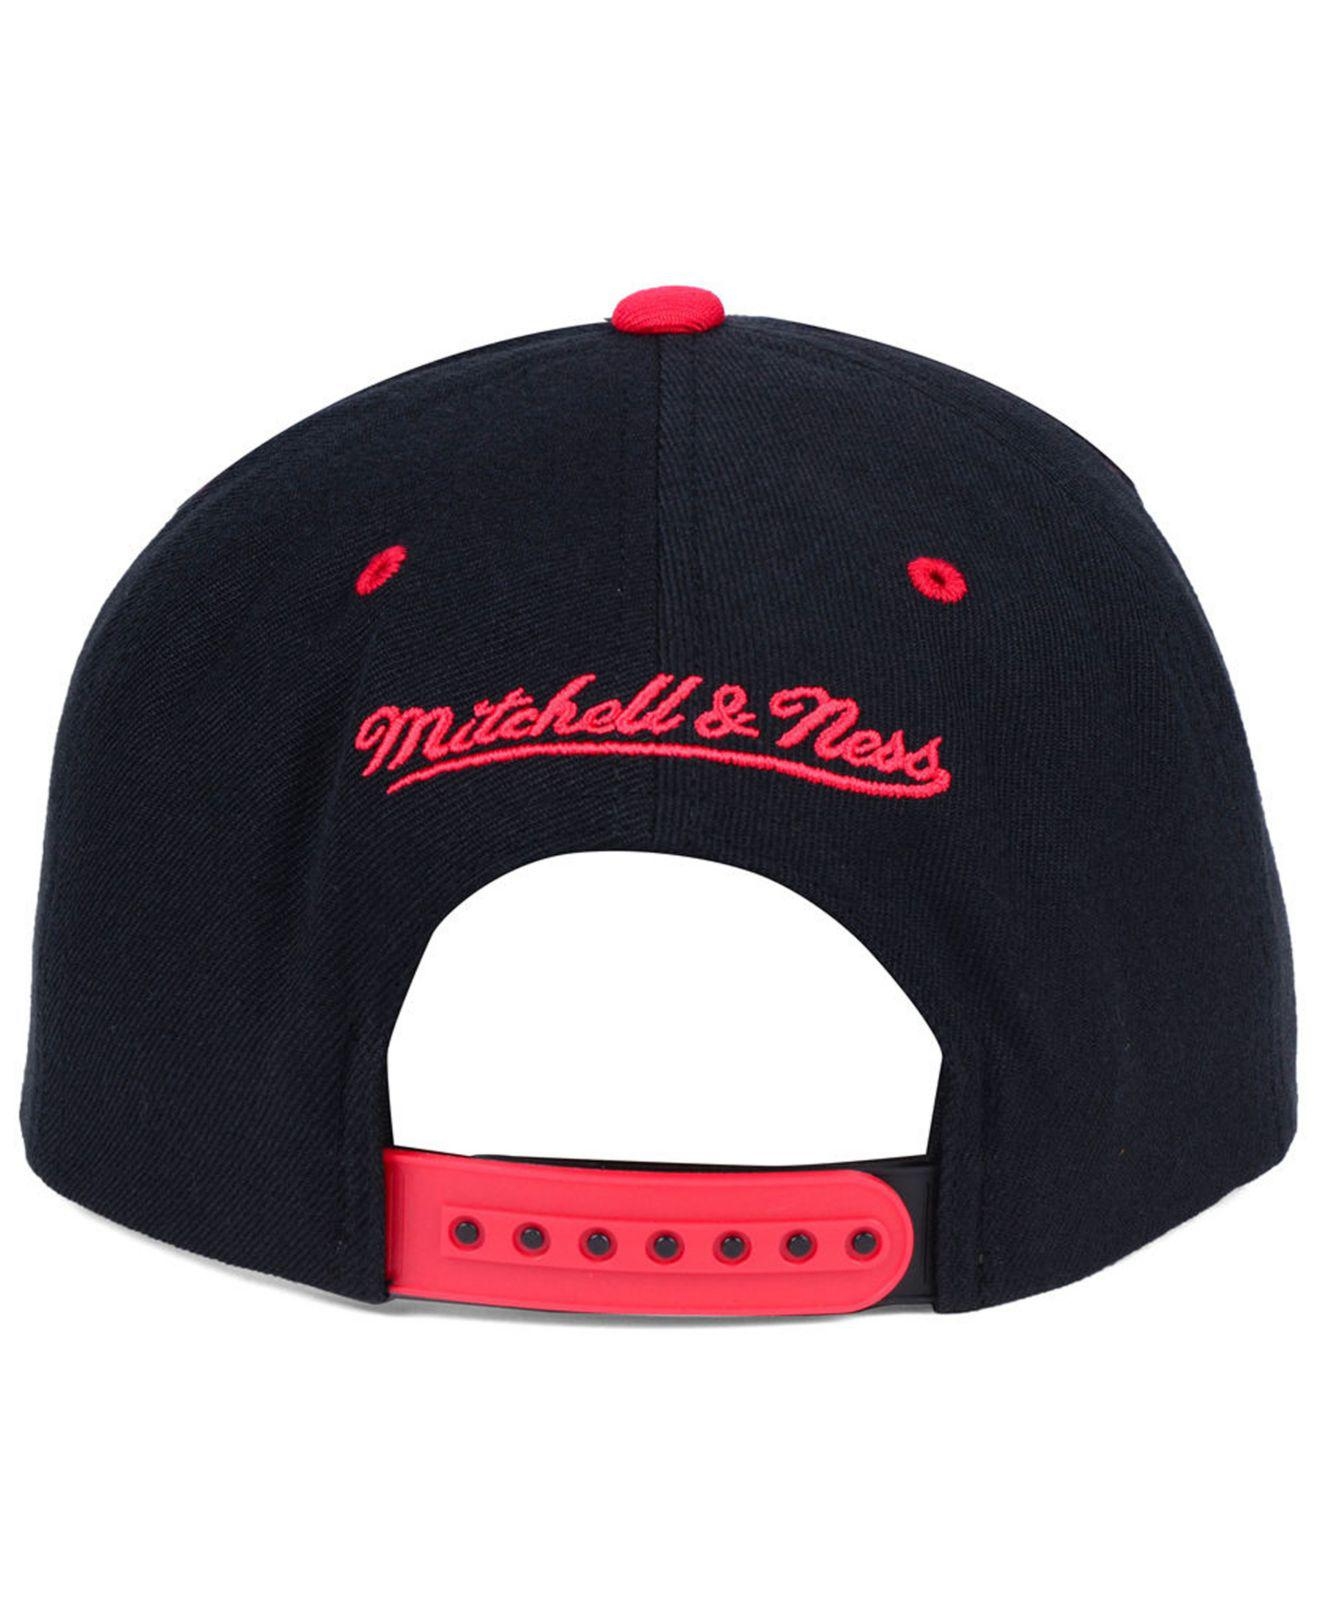 01f0b2935c5 ... low cost lyst mitchell ness chicago bulls dripped snapback cap for men  dfc45 20b63